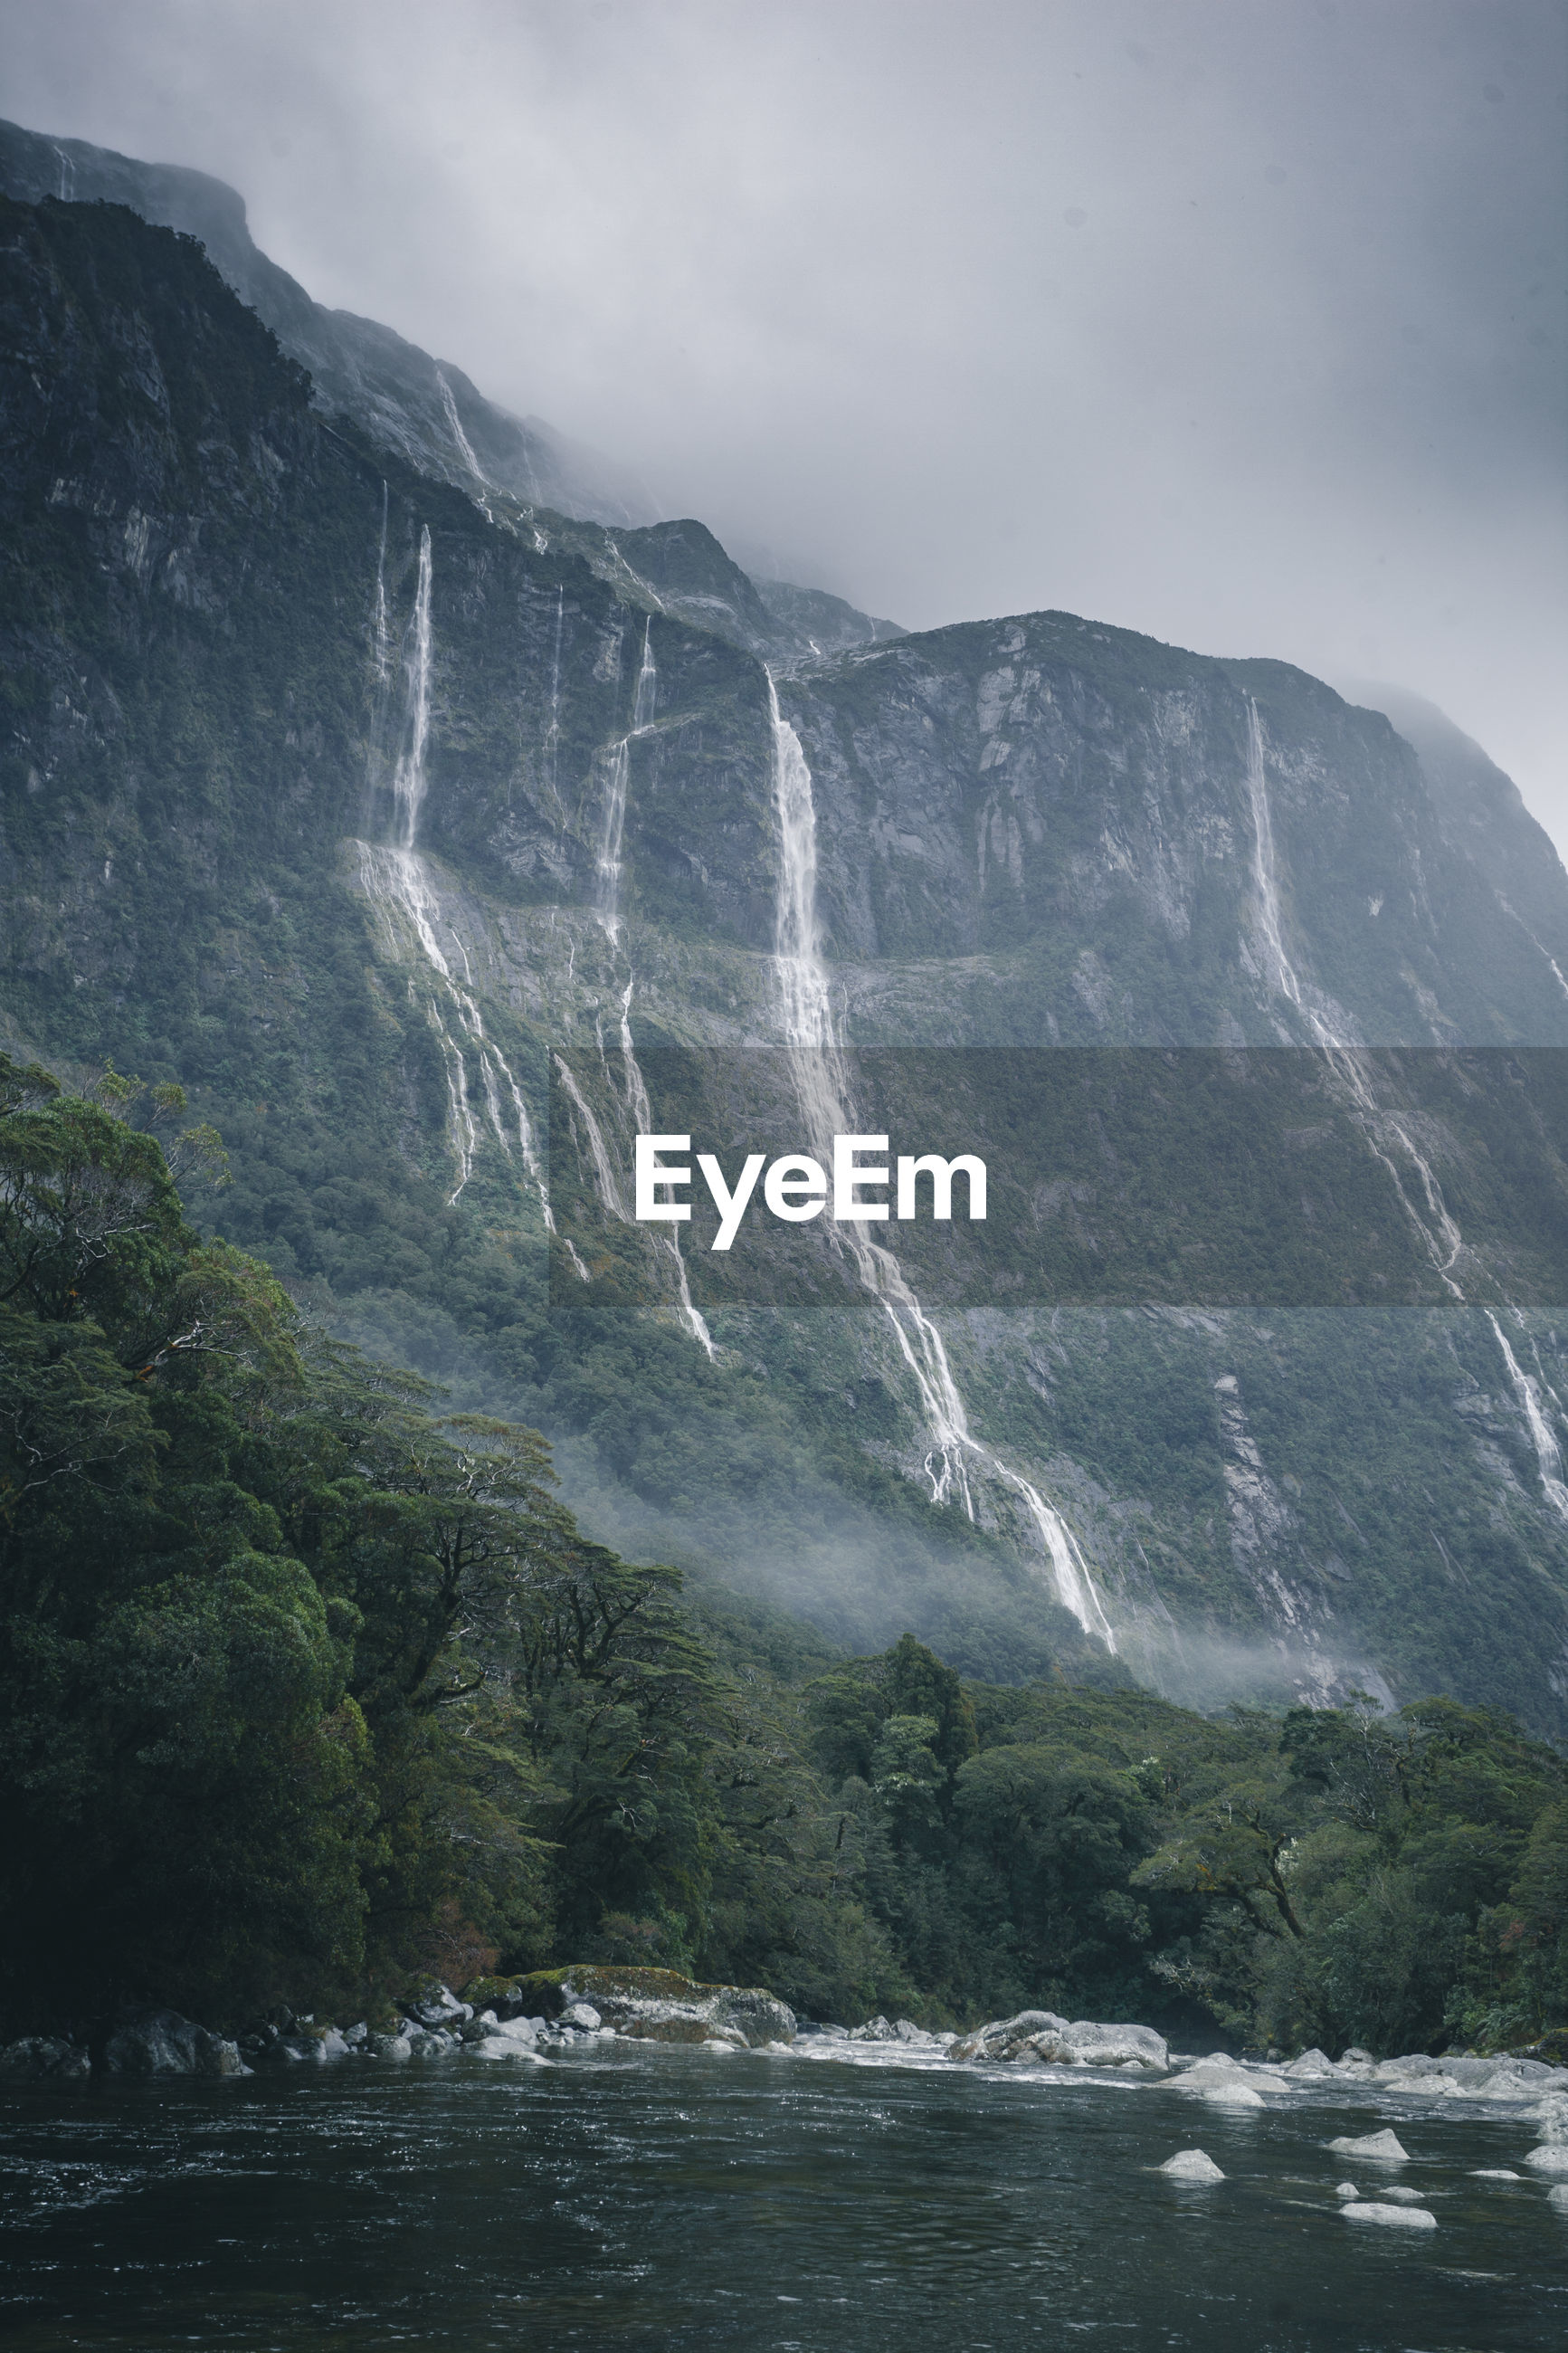 SCENIC VIEW OF WATERFALL ON MOUNTAIN